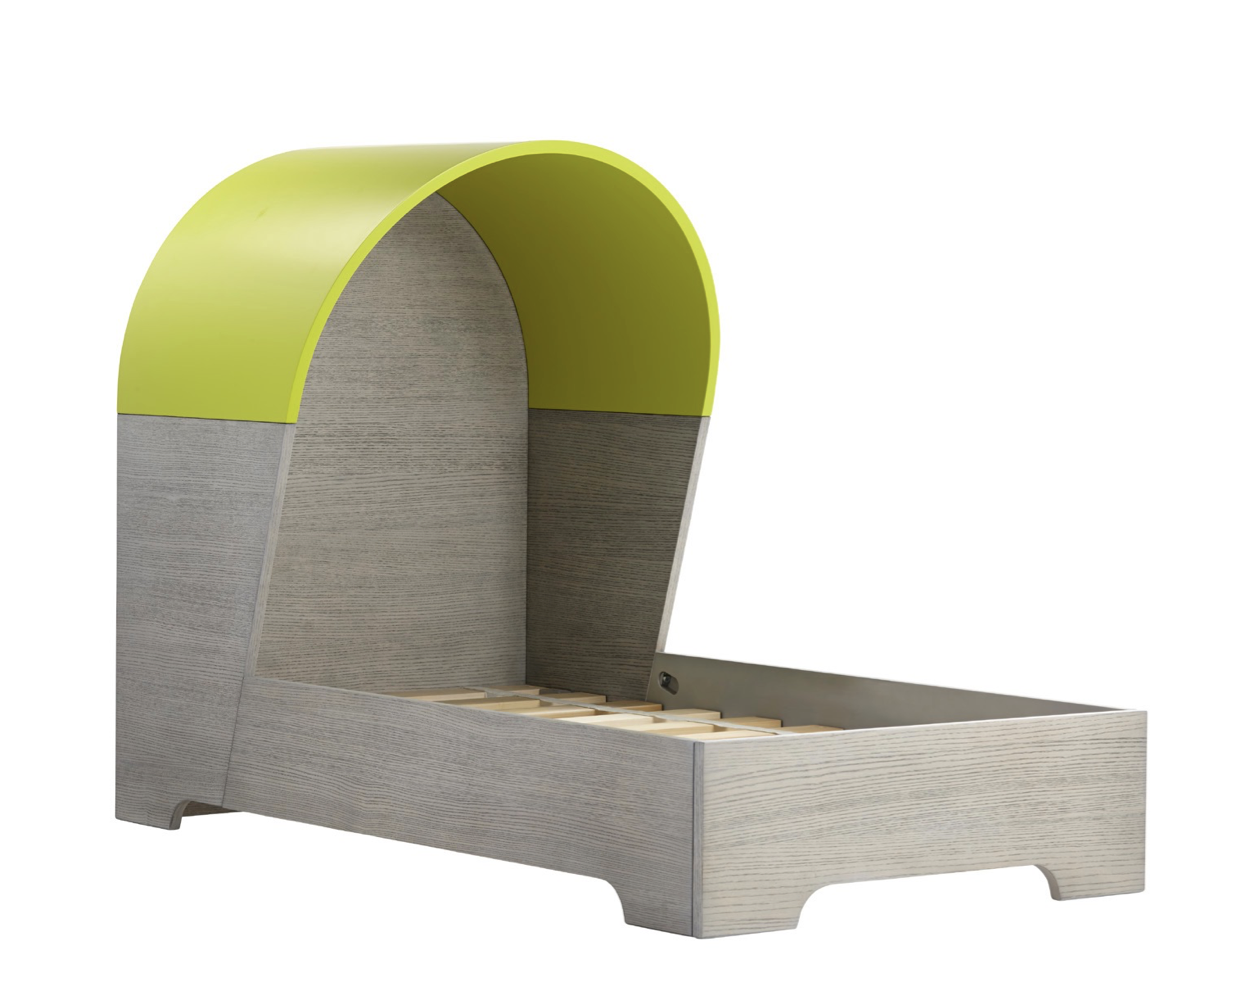 The Land of Nod's recalled toddler bed